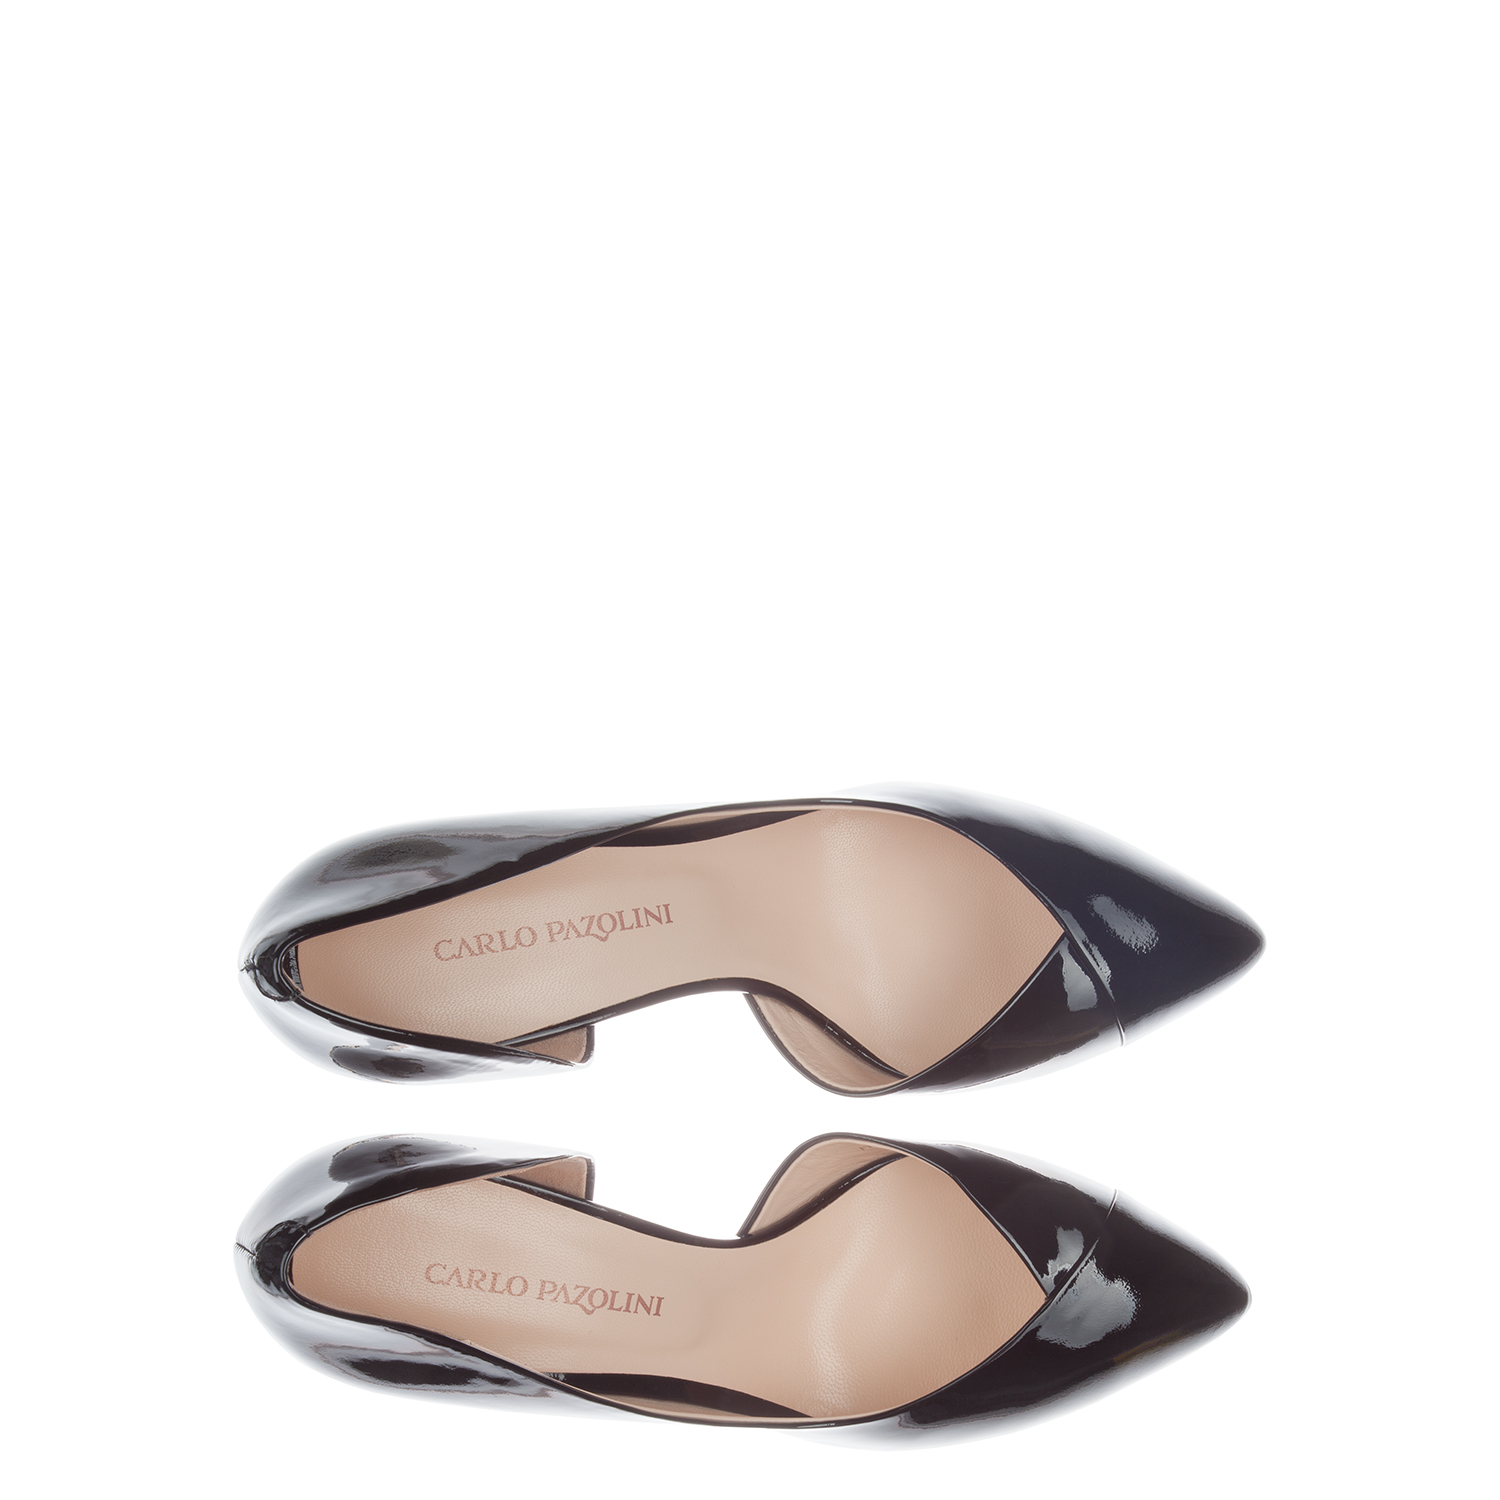 Women's shoes CARLO PAZOLINI FL-RIN1-1L